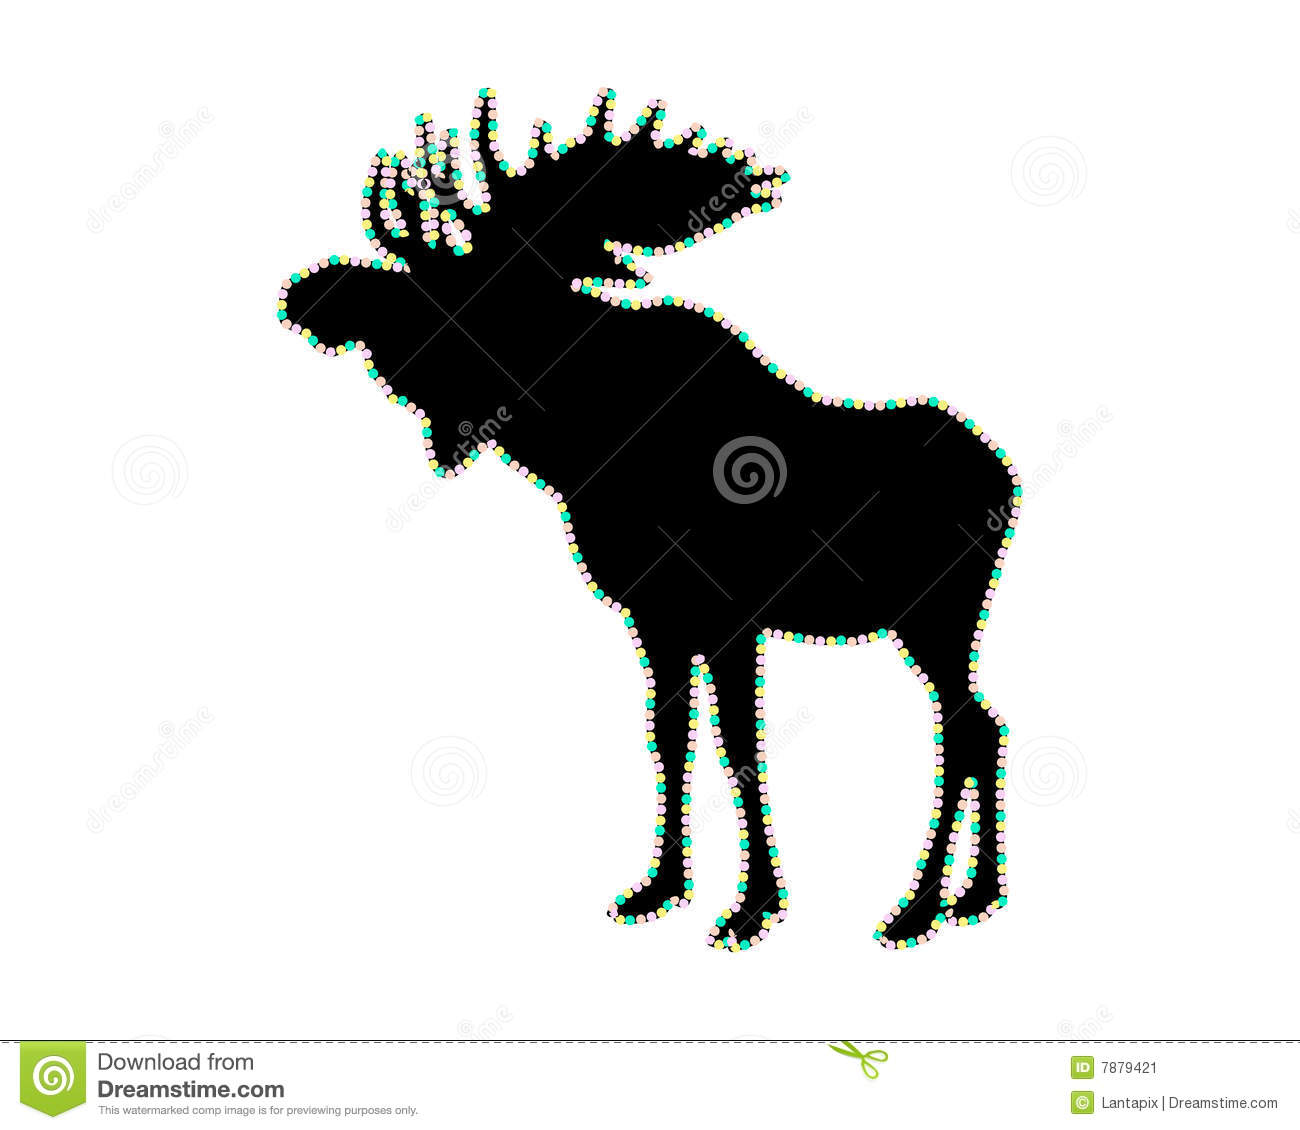 Silhouette Of A Moose Stock Image - Image: 7879421 Eagle Silhouette Vector